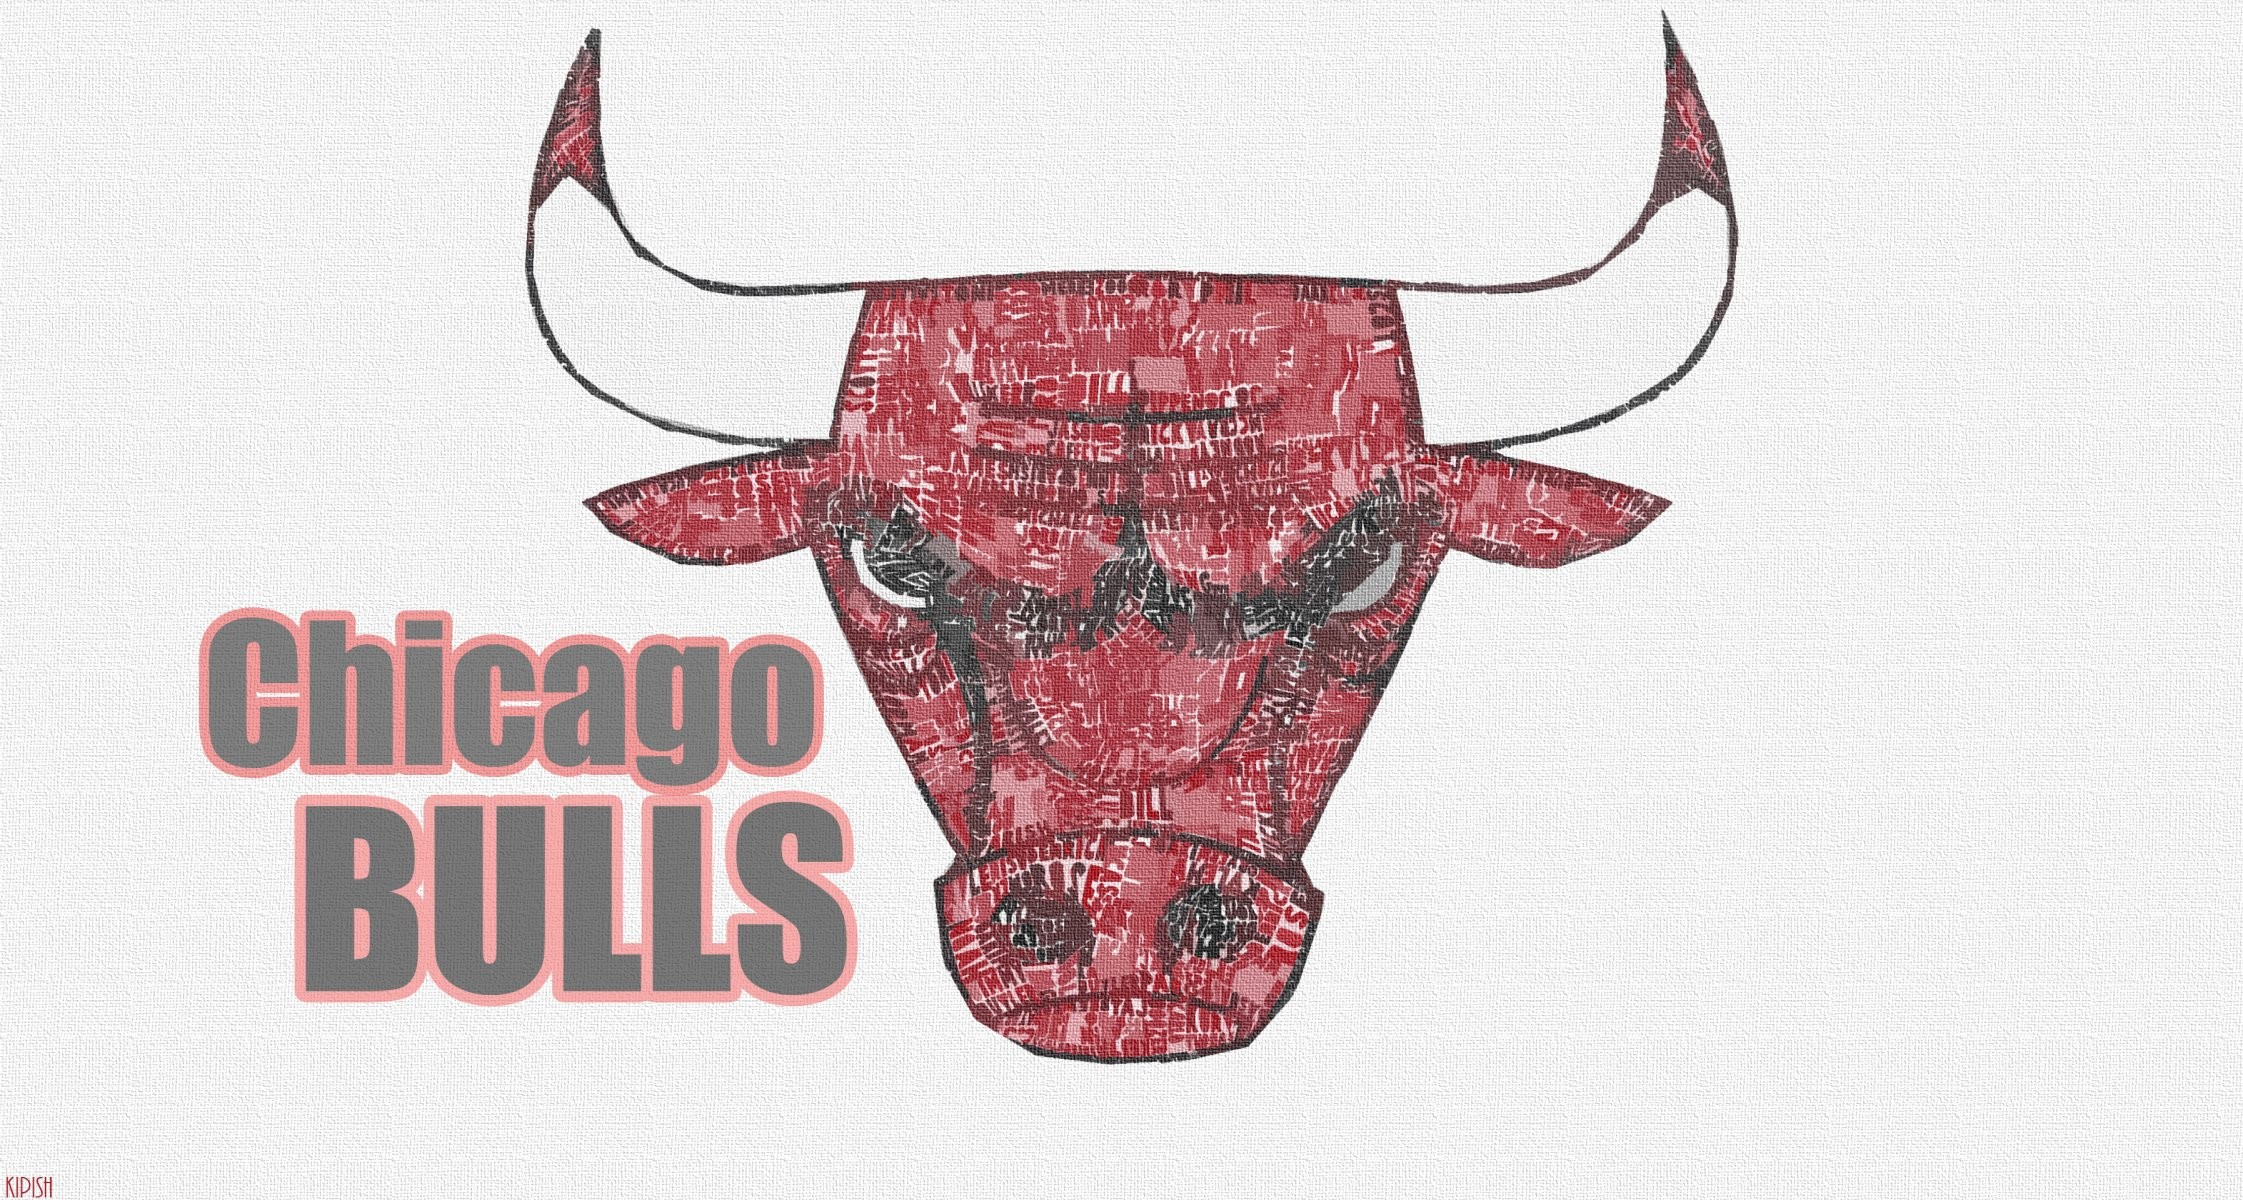 2243x1200 basketball nba logo background chicago bulls bulls HD wallpaper